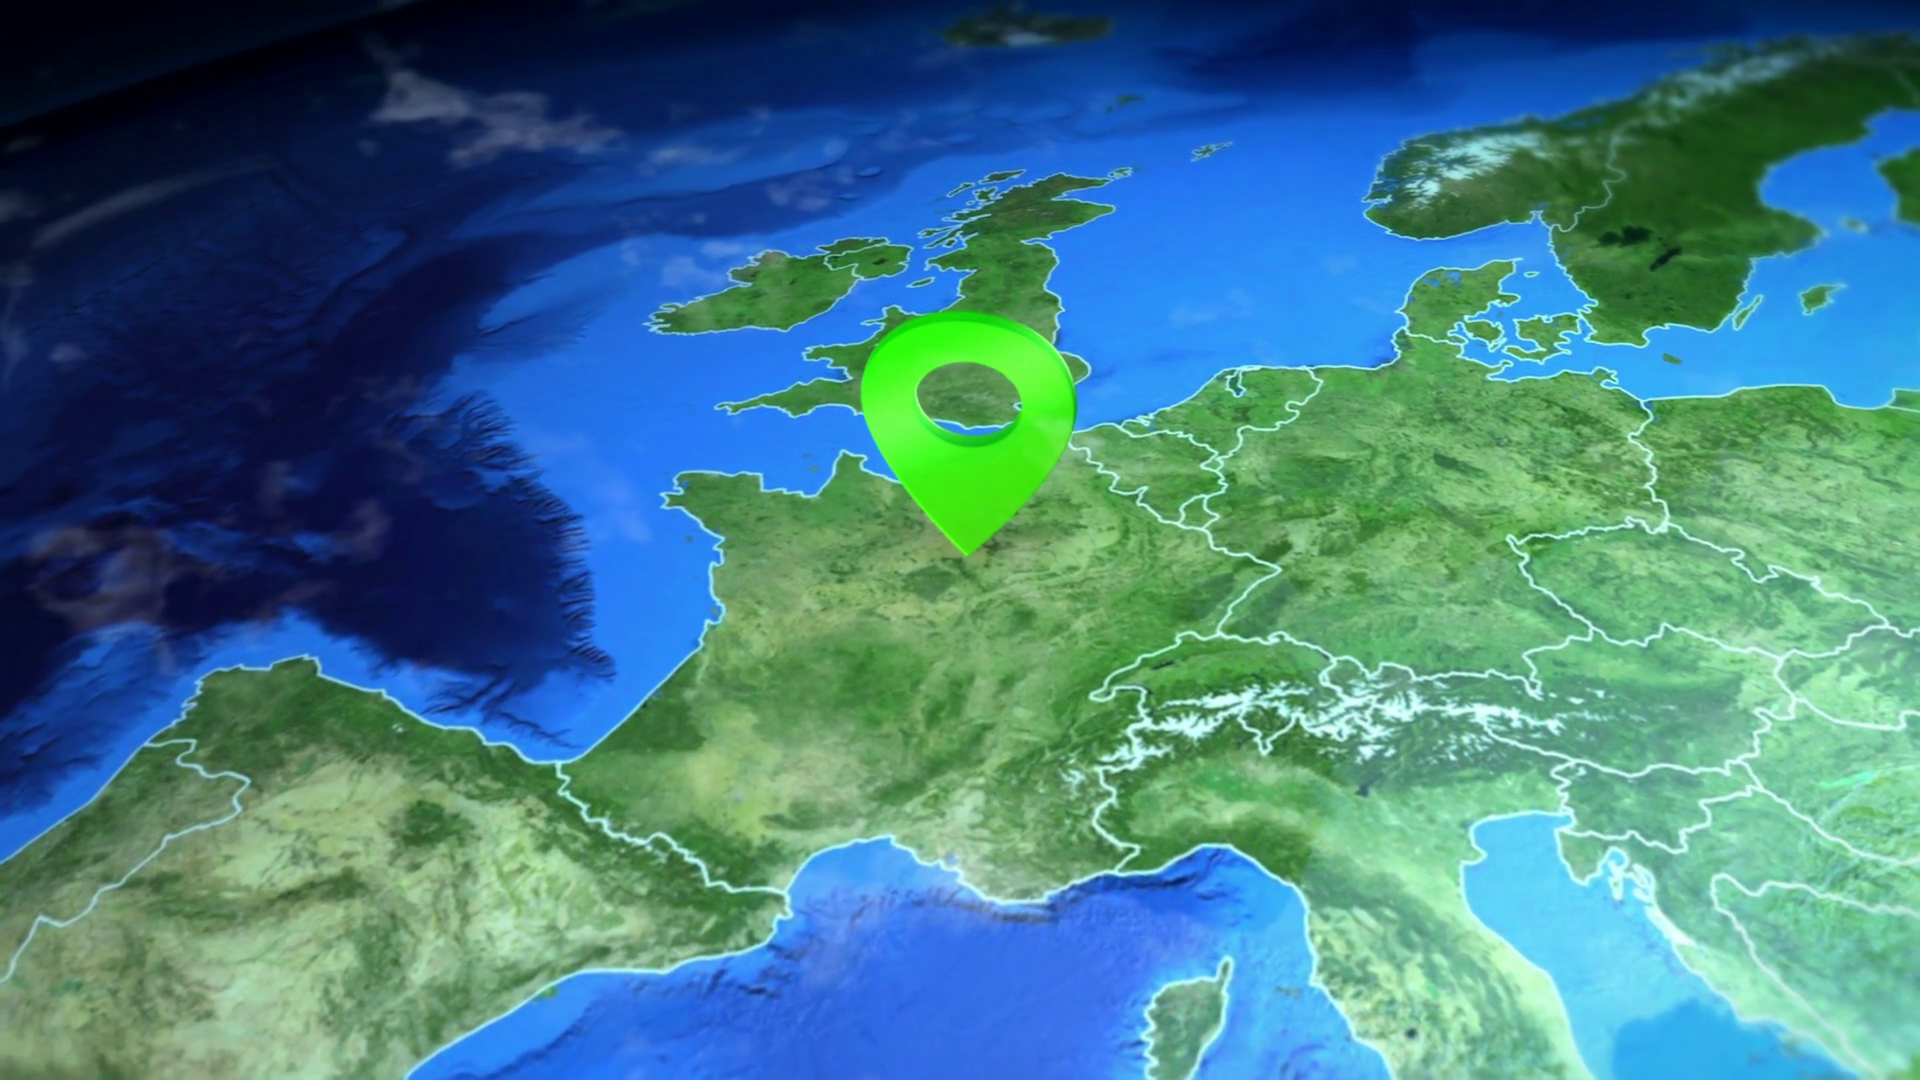 Picture of: France On The Europe Map 3d Map Render Motion Through Clouds Land View From Top With Zoom Of Continent Animated Pin Marked Location Of Country On The Geographic Map Background For Travel